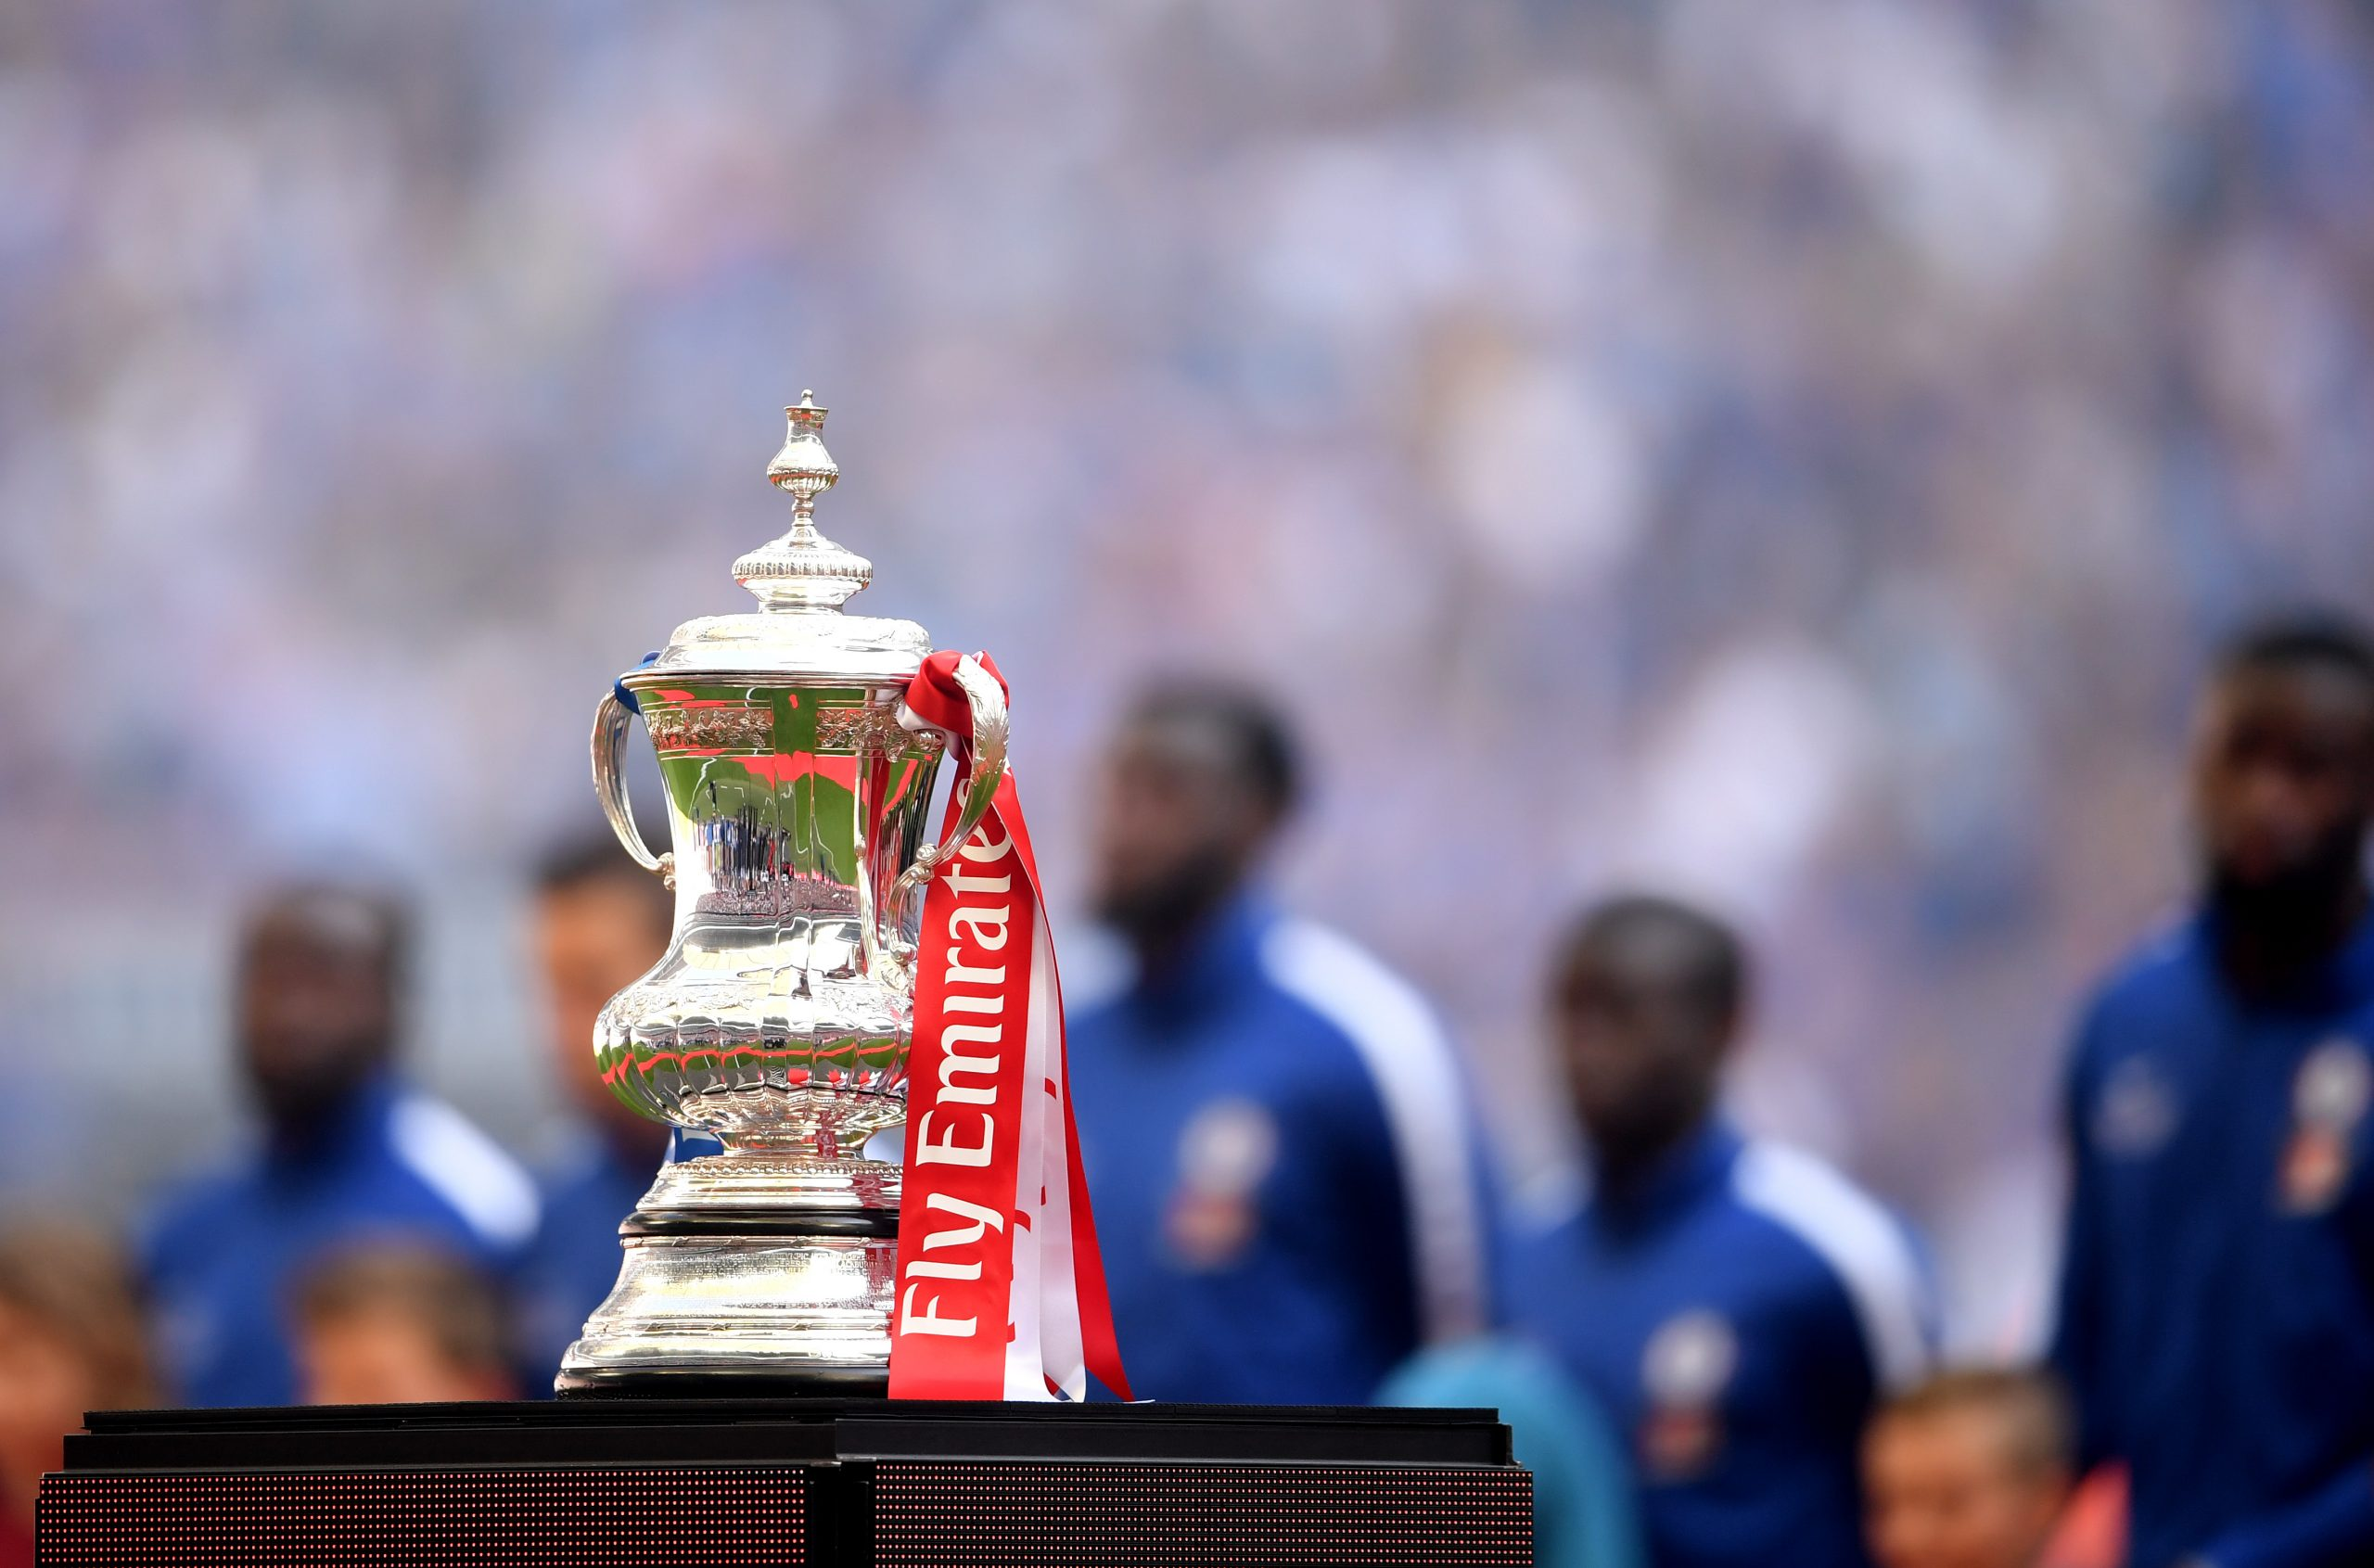 Chelsea have been drawn to play Sheffield United in their FA Cup quarter-final fixture after the 6th round draw was held on Thursday. (GETTY Images)